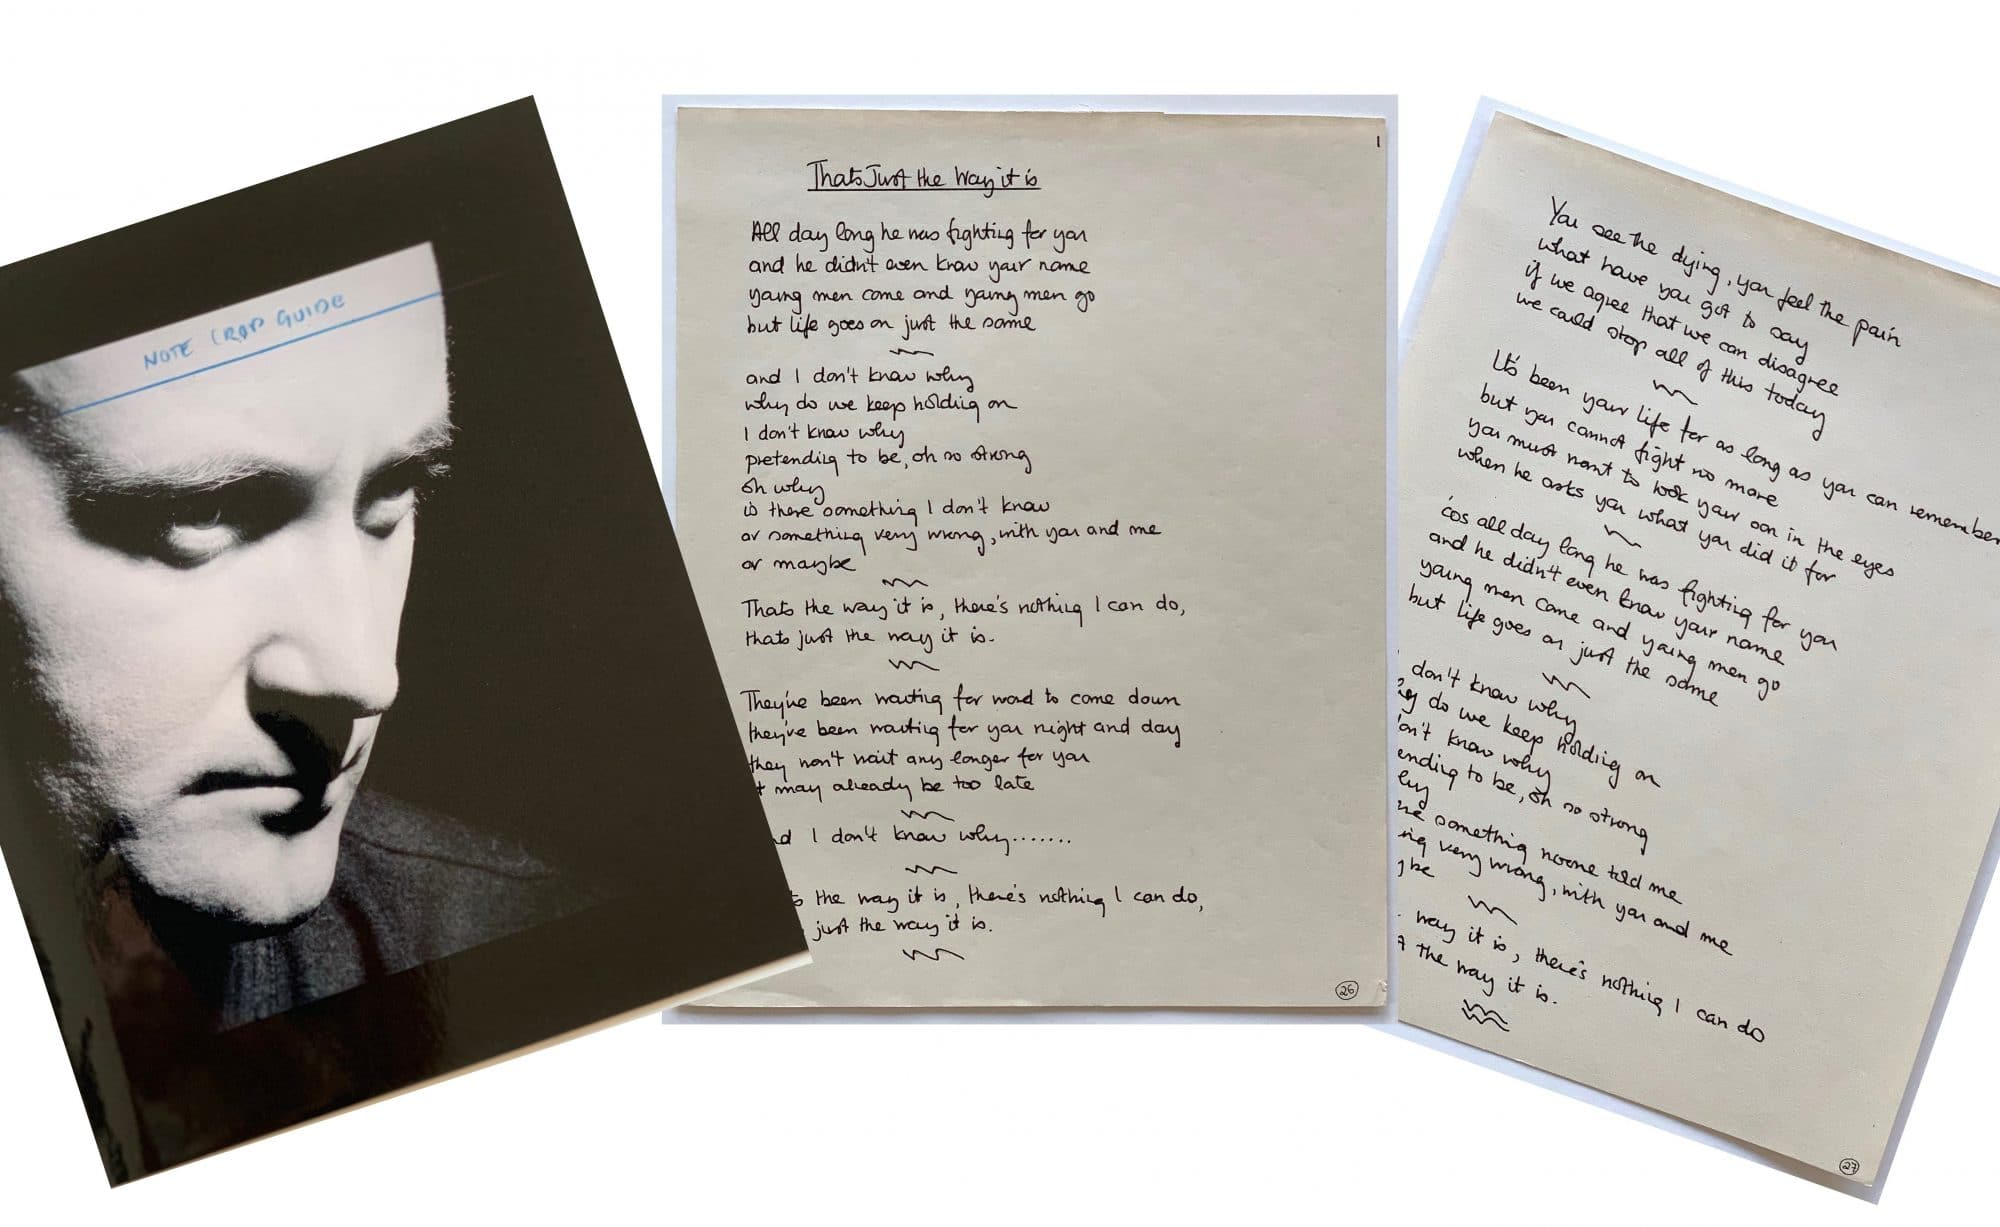 phil collins handwritten lyrics for that s just the way it is